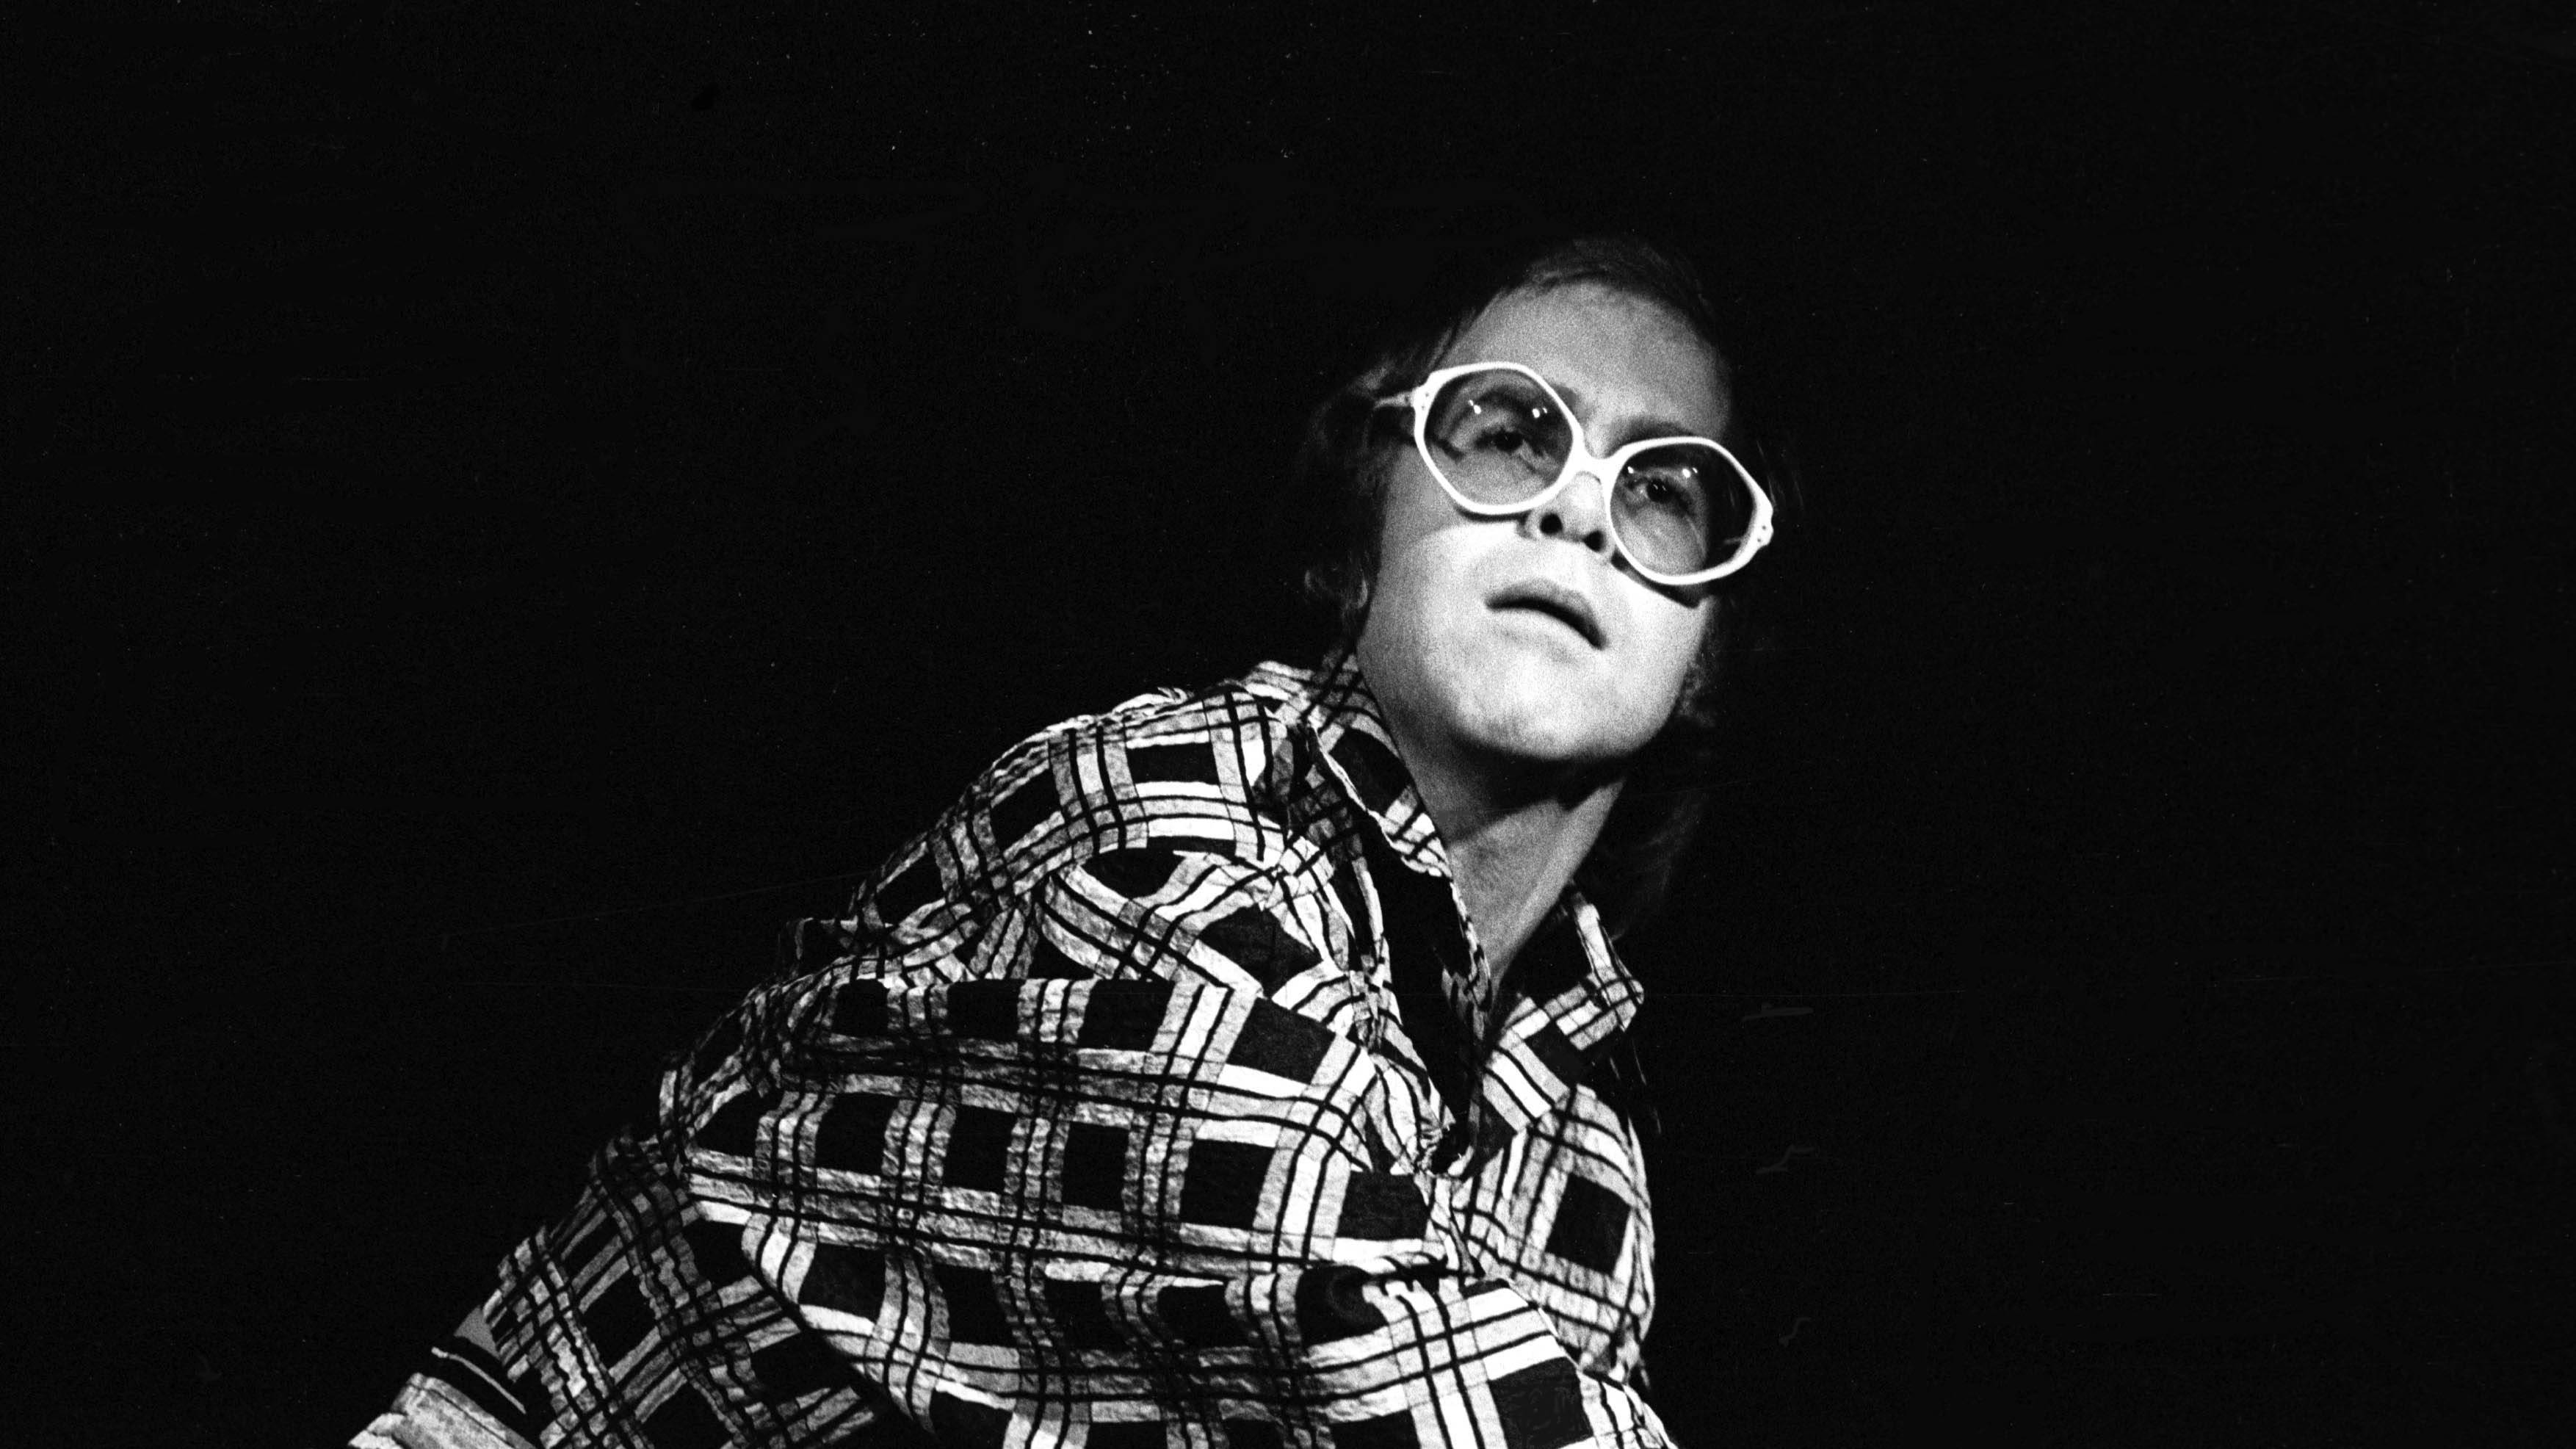 The most outrageous moments from Elton John's Me autobiography